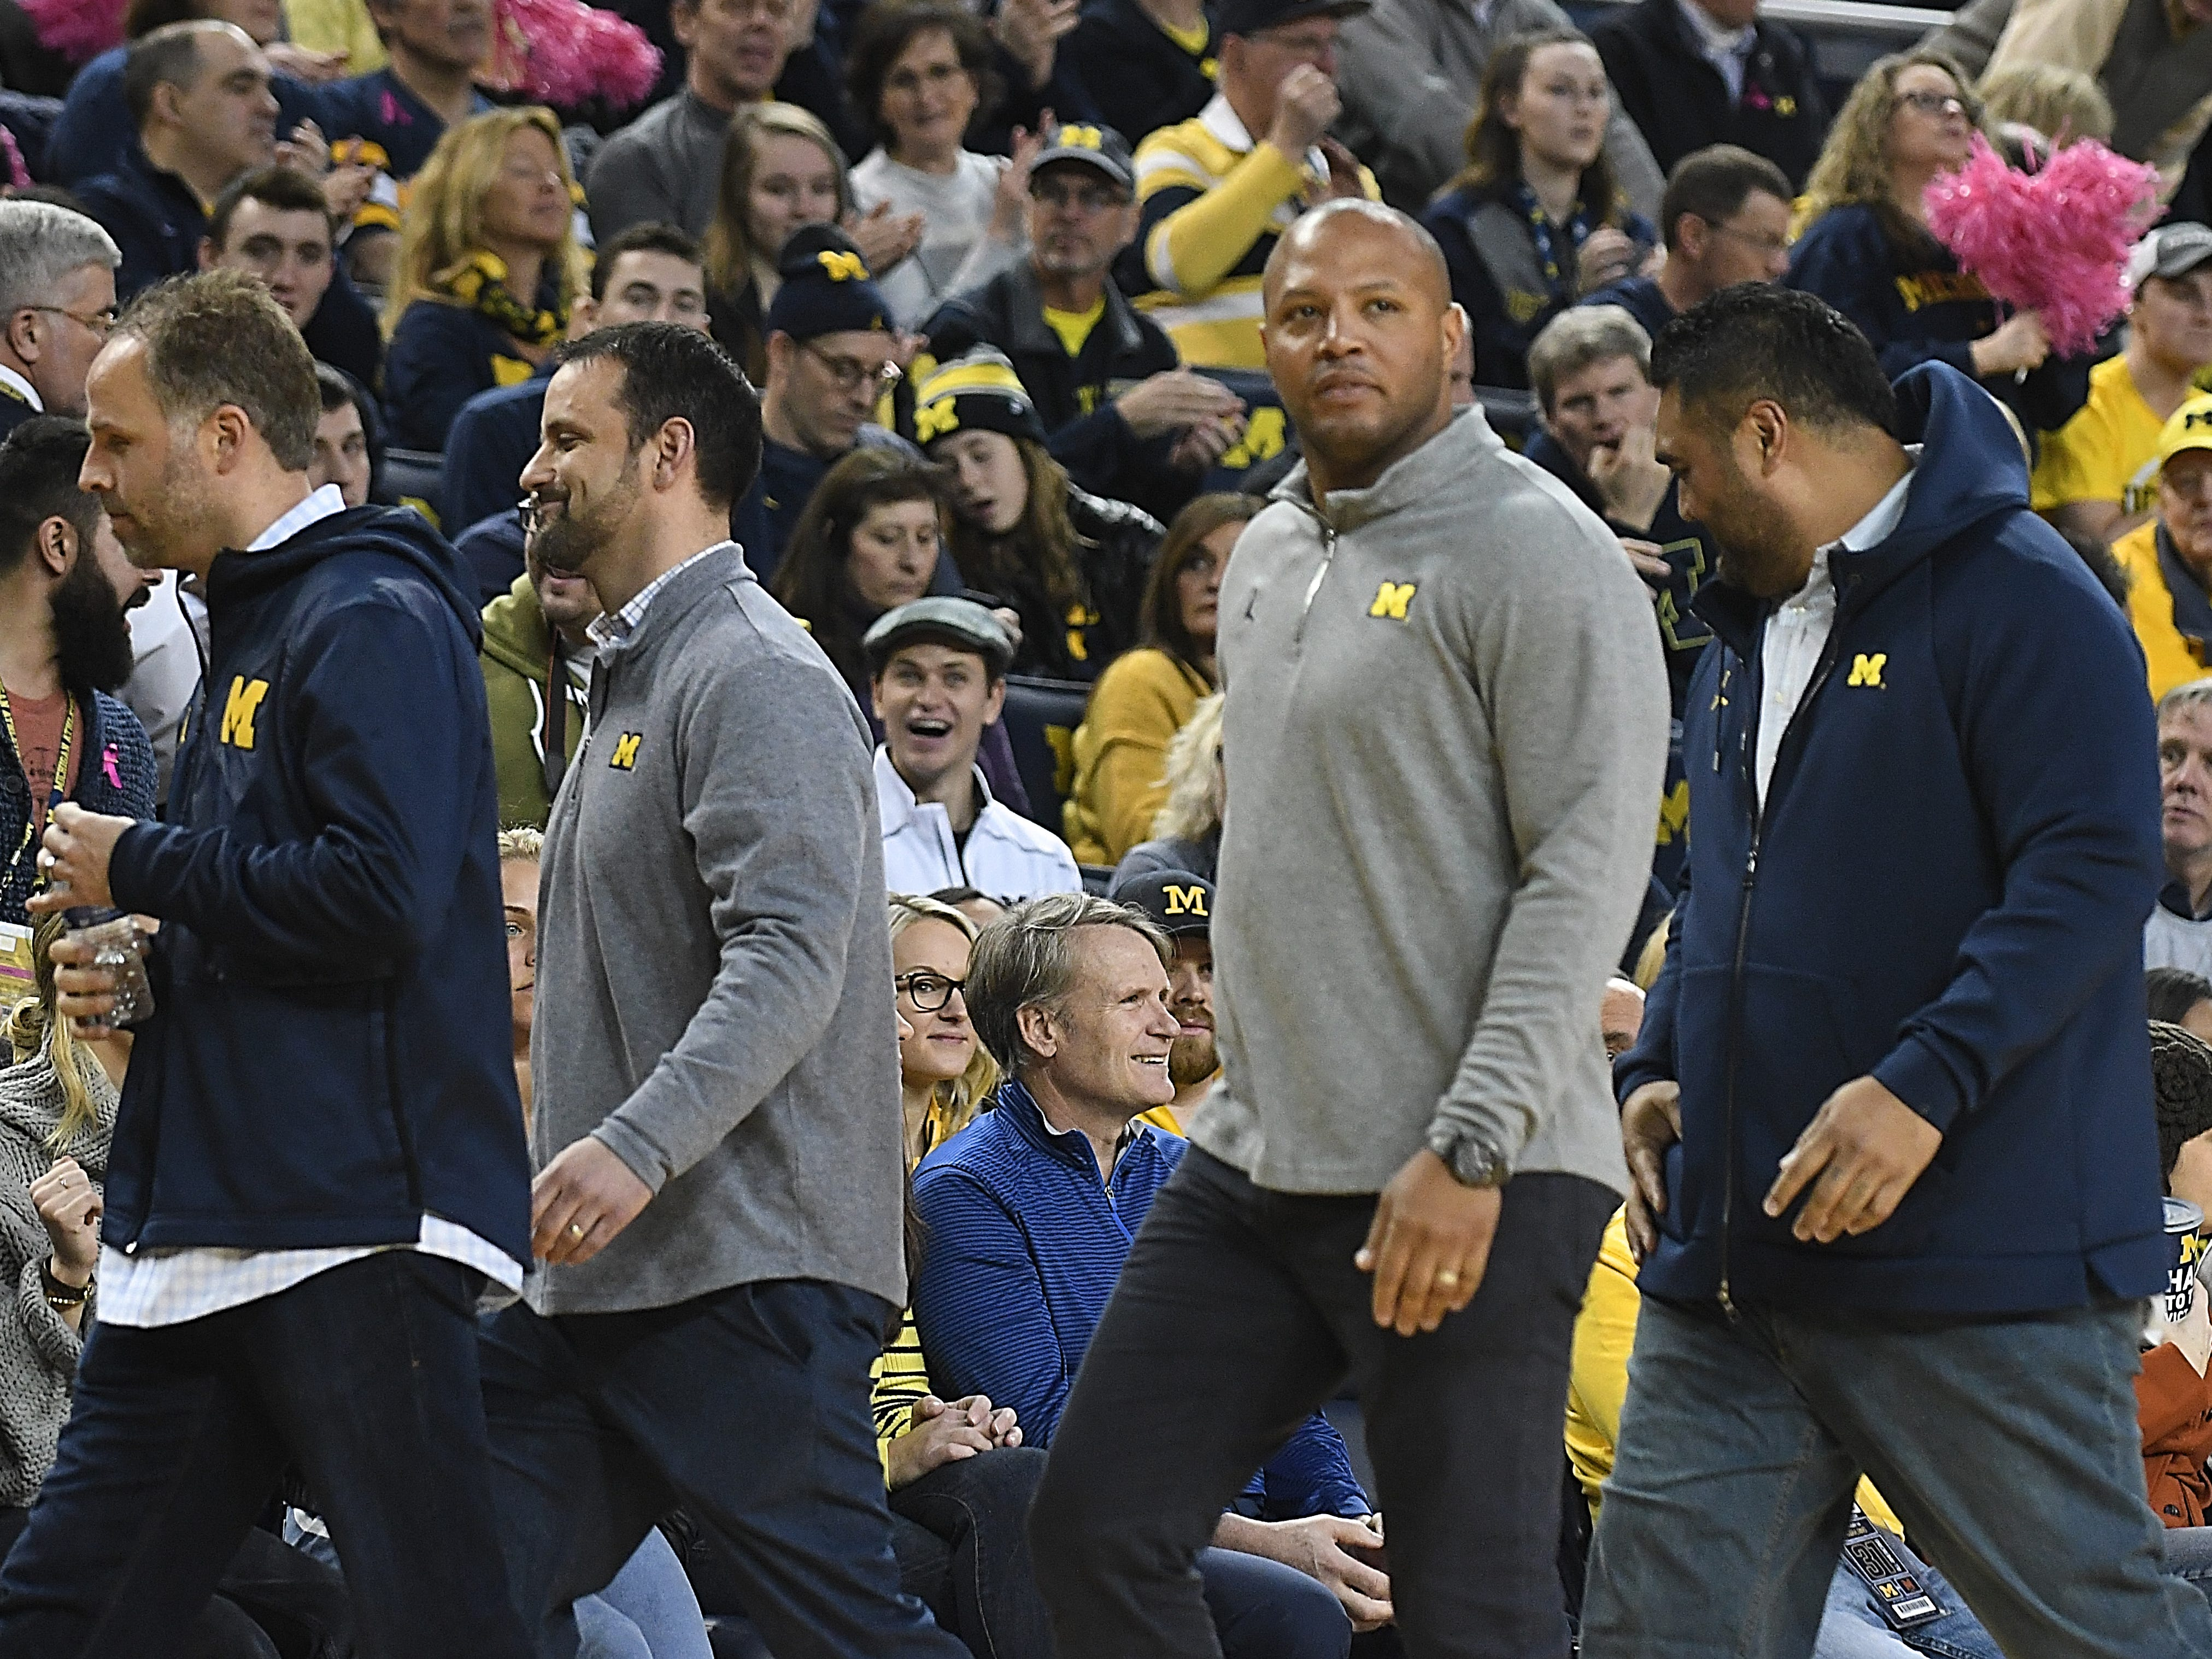 New Michigan football coaches quarterbacks coach Ben McDaniels, defensive backs coach Anthony Campanile, offensive coordinator Josh Gattis and defensive line coach Shaun Nua are introduced during a break in the game.